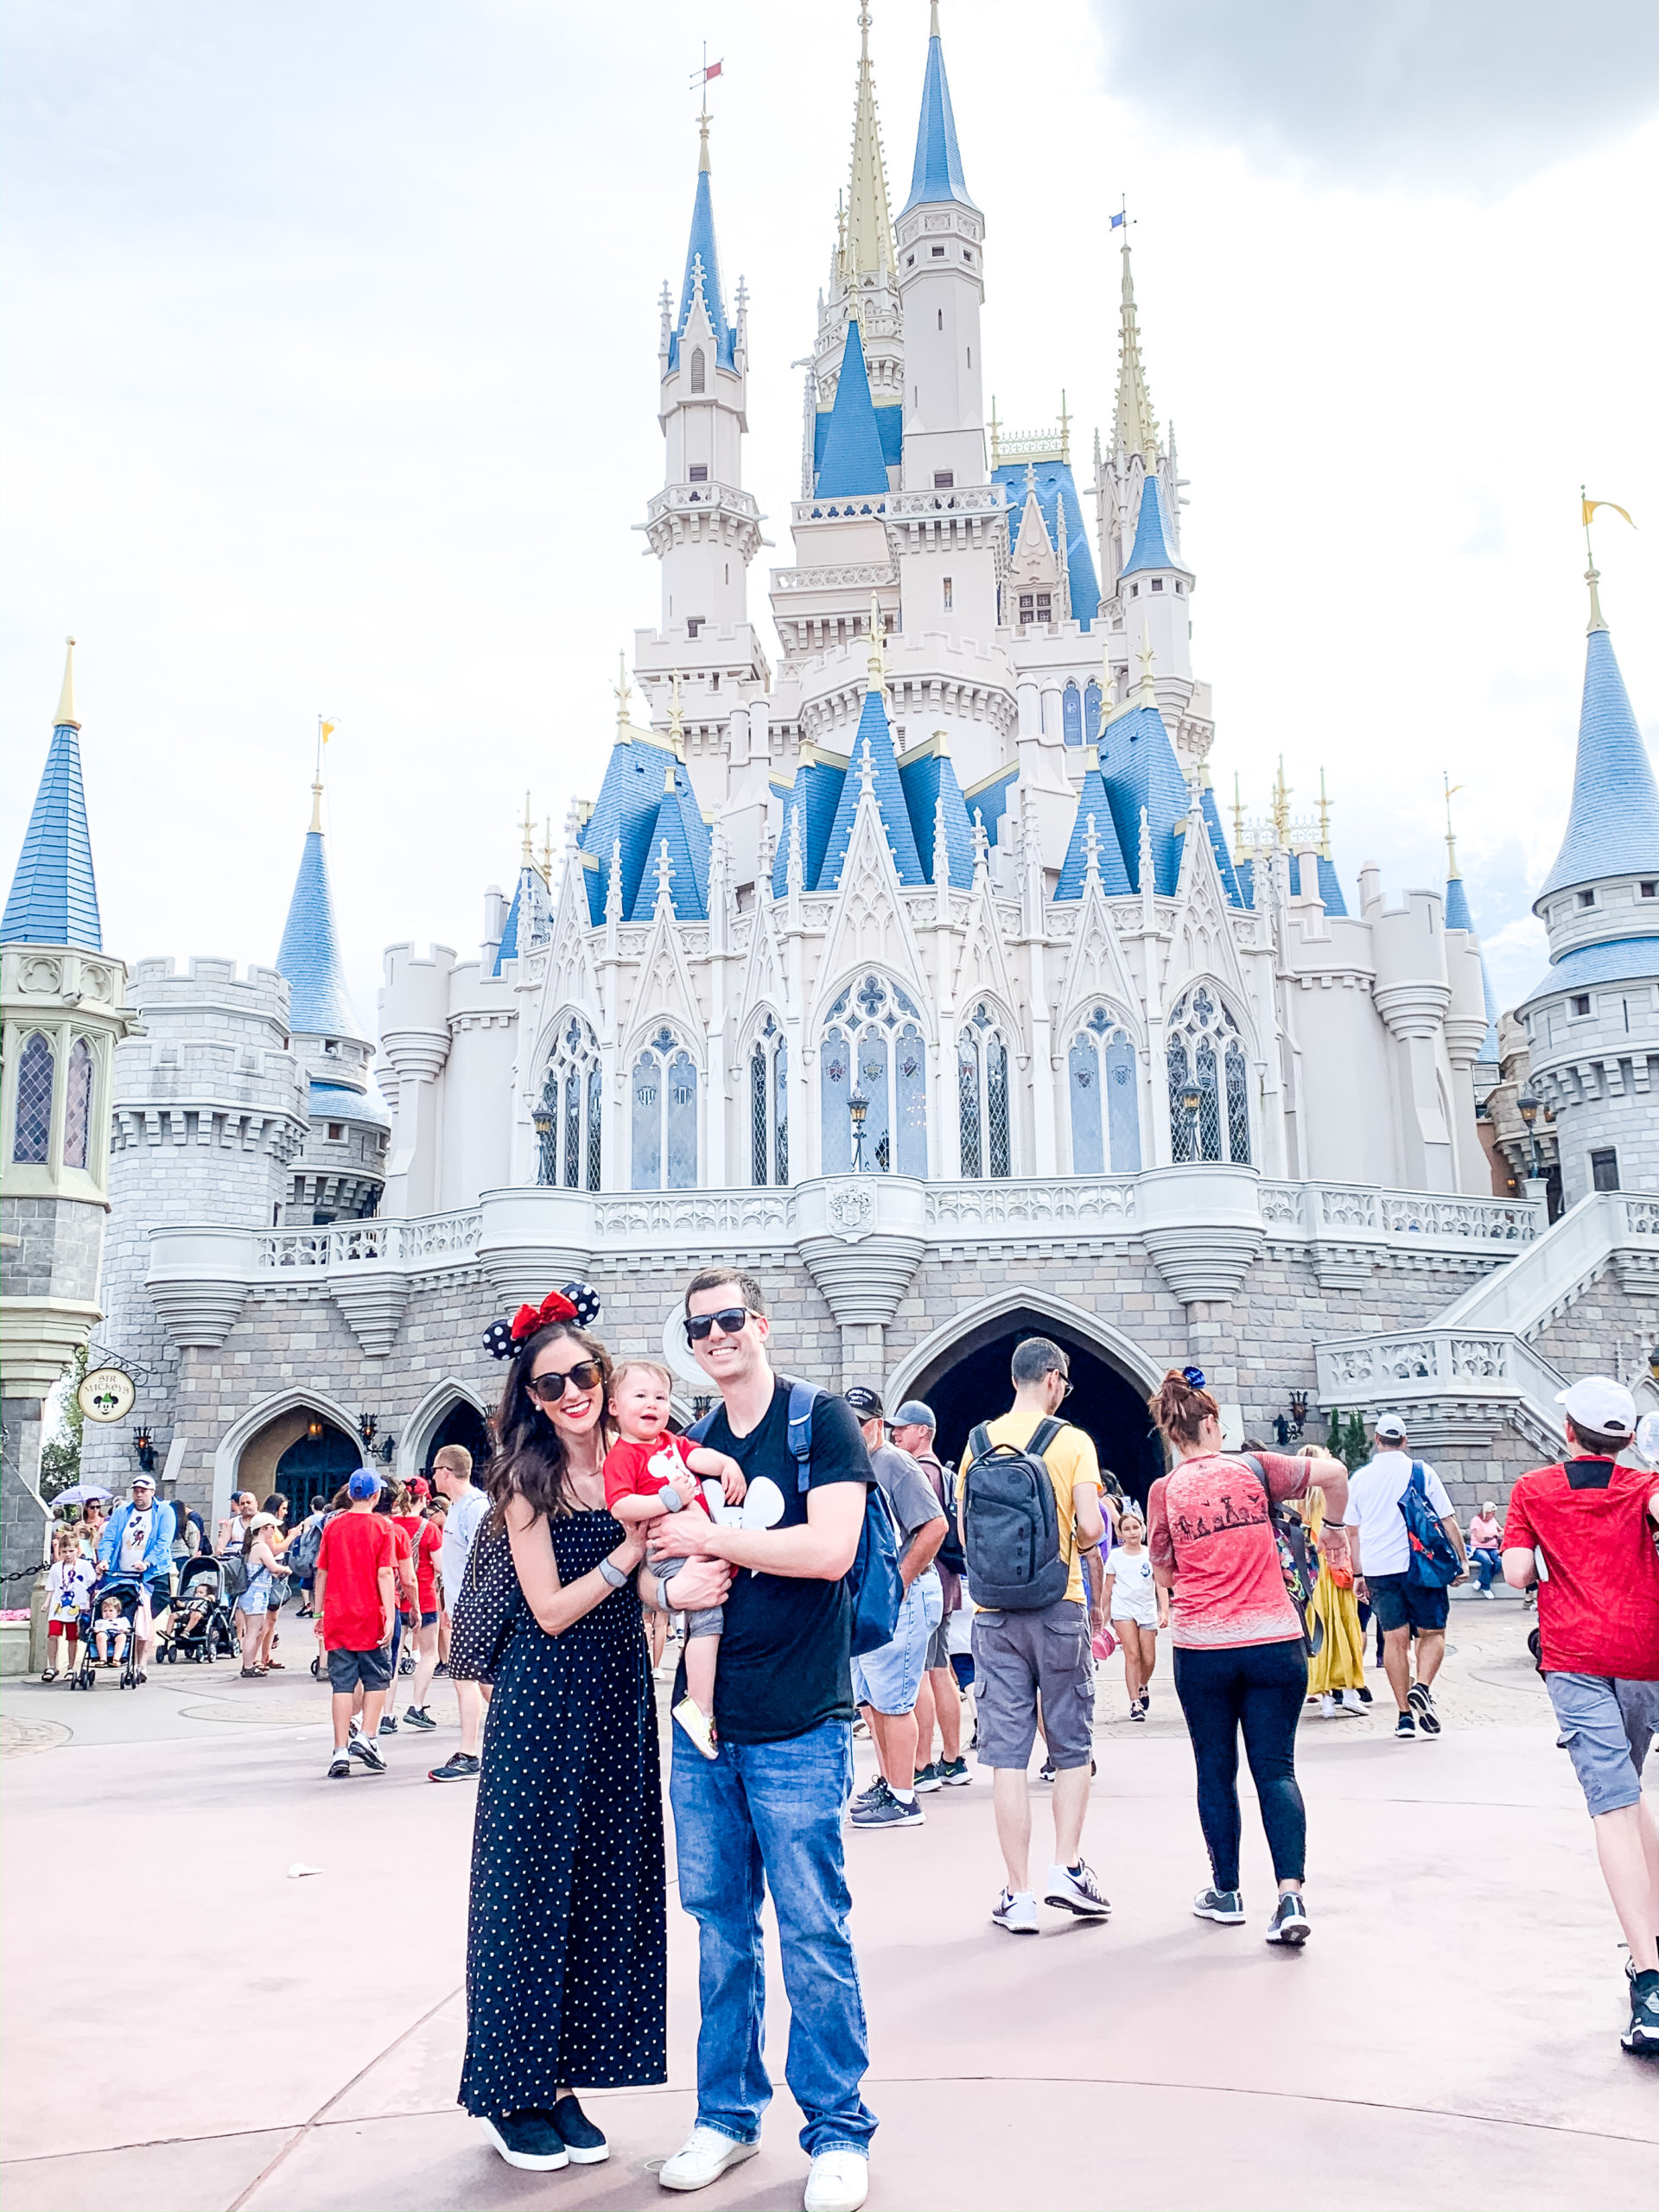 A Full Recap of #DisneyCreatorDays - 7 Days at Disney World and on a Disney Cruise! - Cinderella's Castle in Magic Kingdom